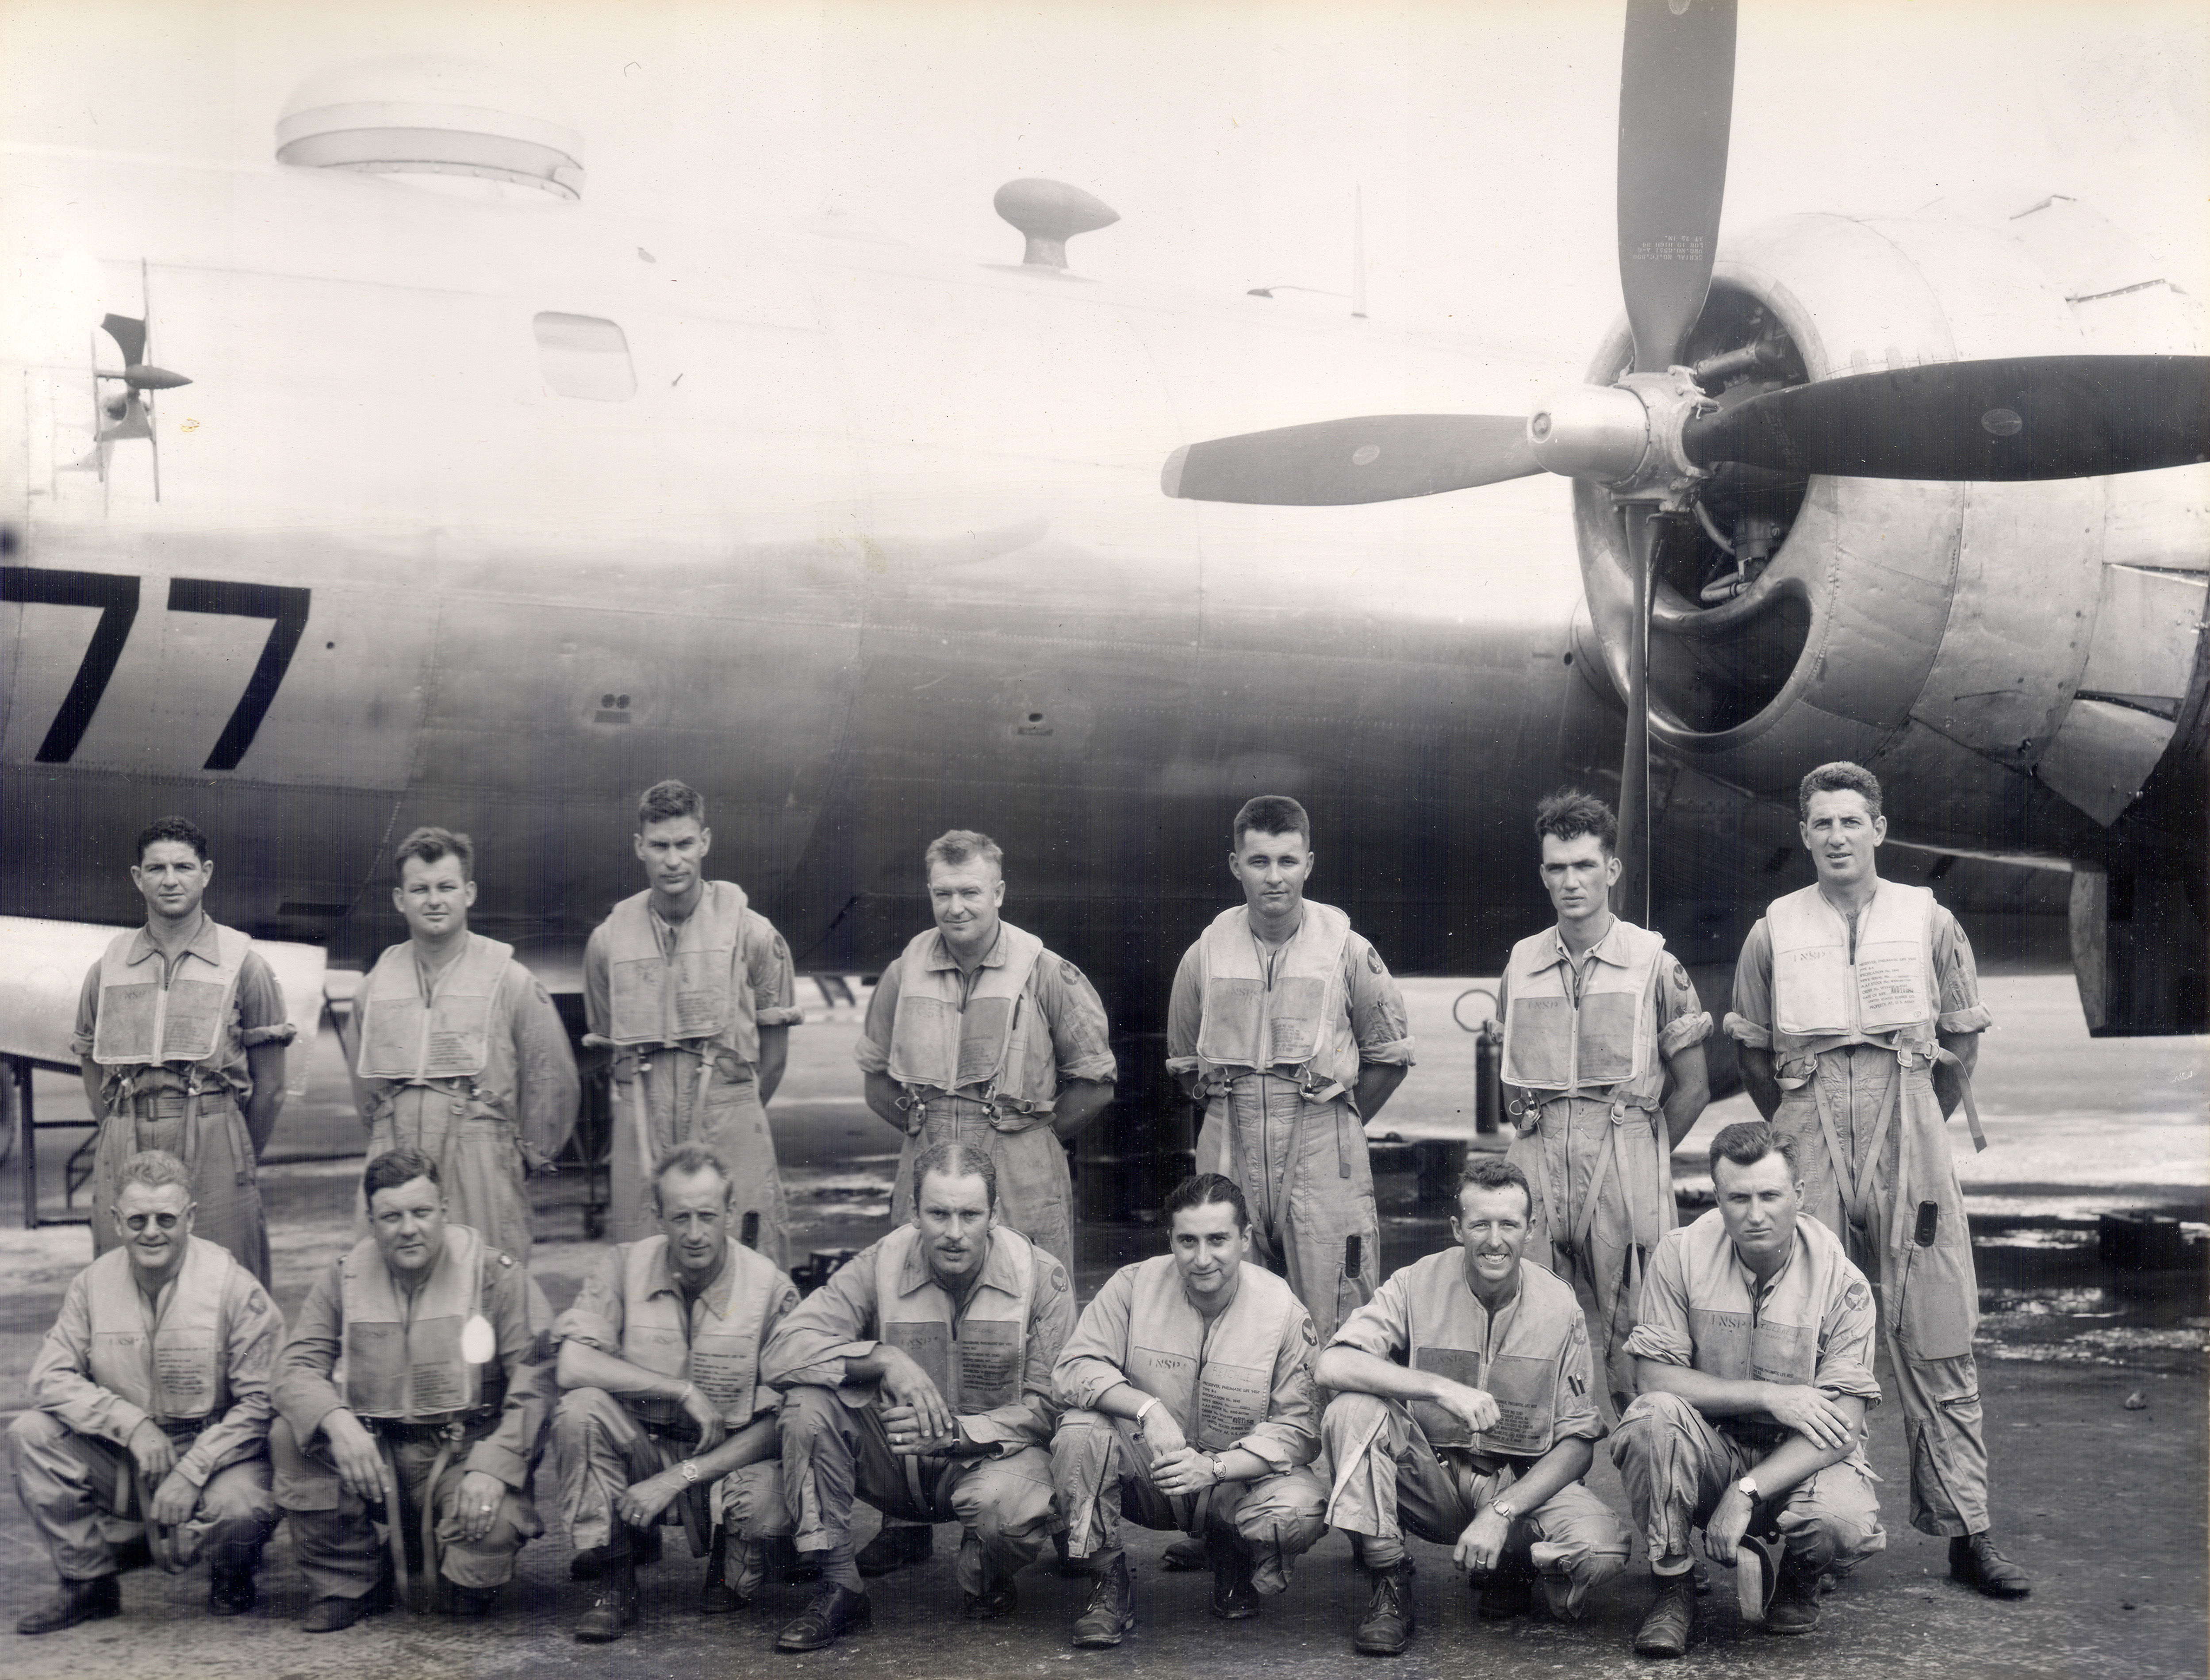 Task Unit 1.52 Air Crew including Major Perry M. Thomas, 1945-1946